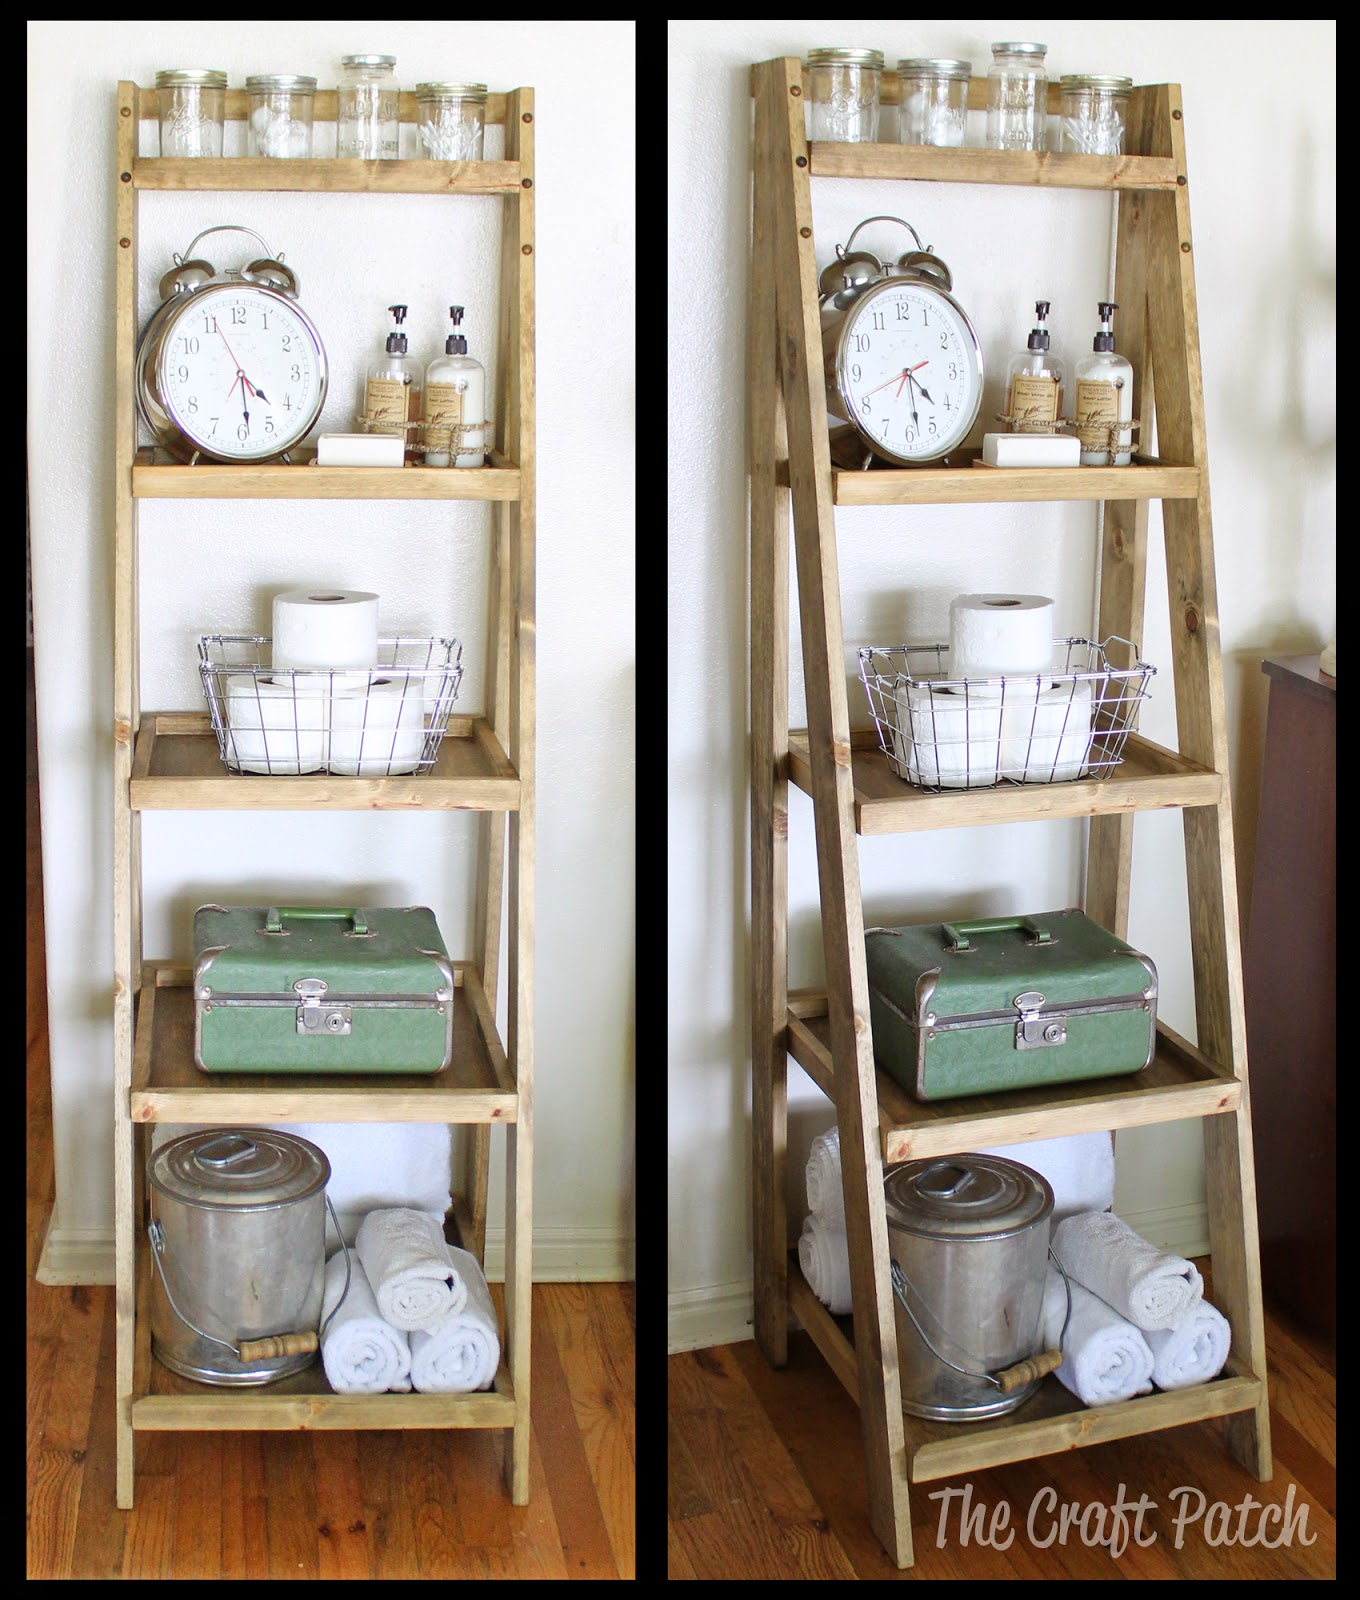 Diy Shelves For Small Bathrooms: DIY Ladder Shelf Bathroom Storage